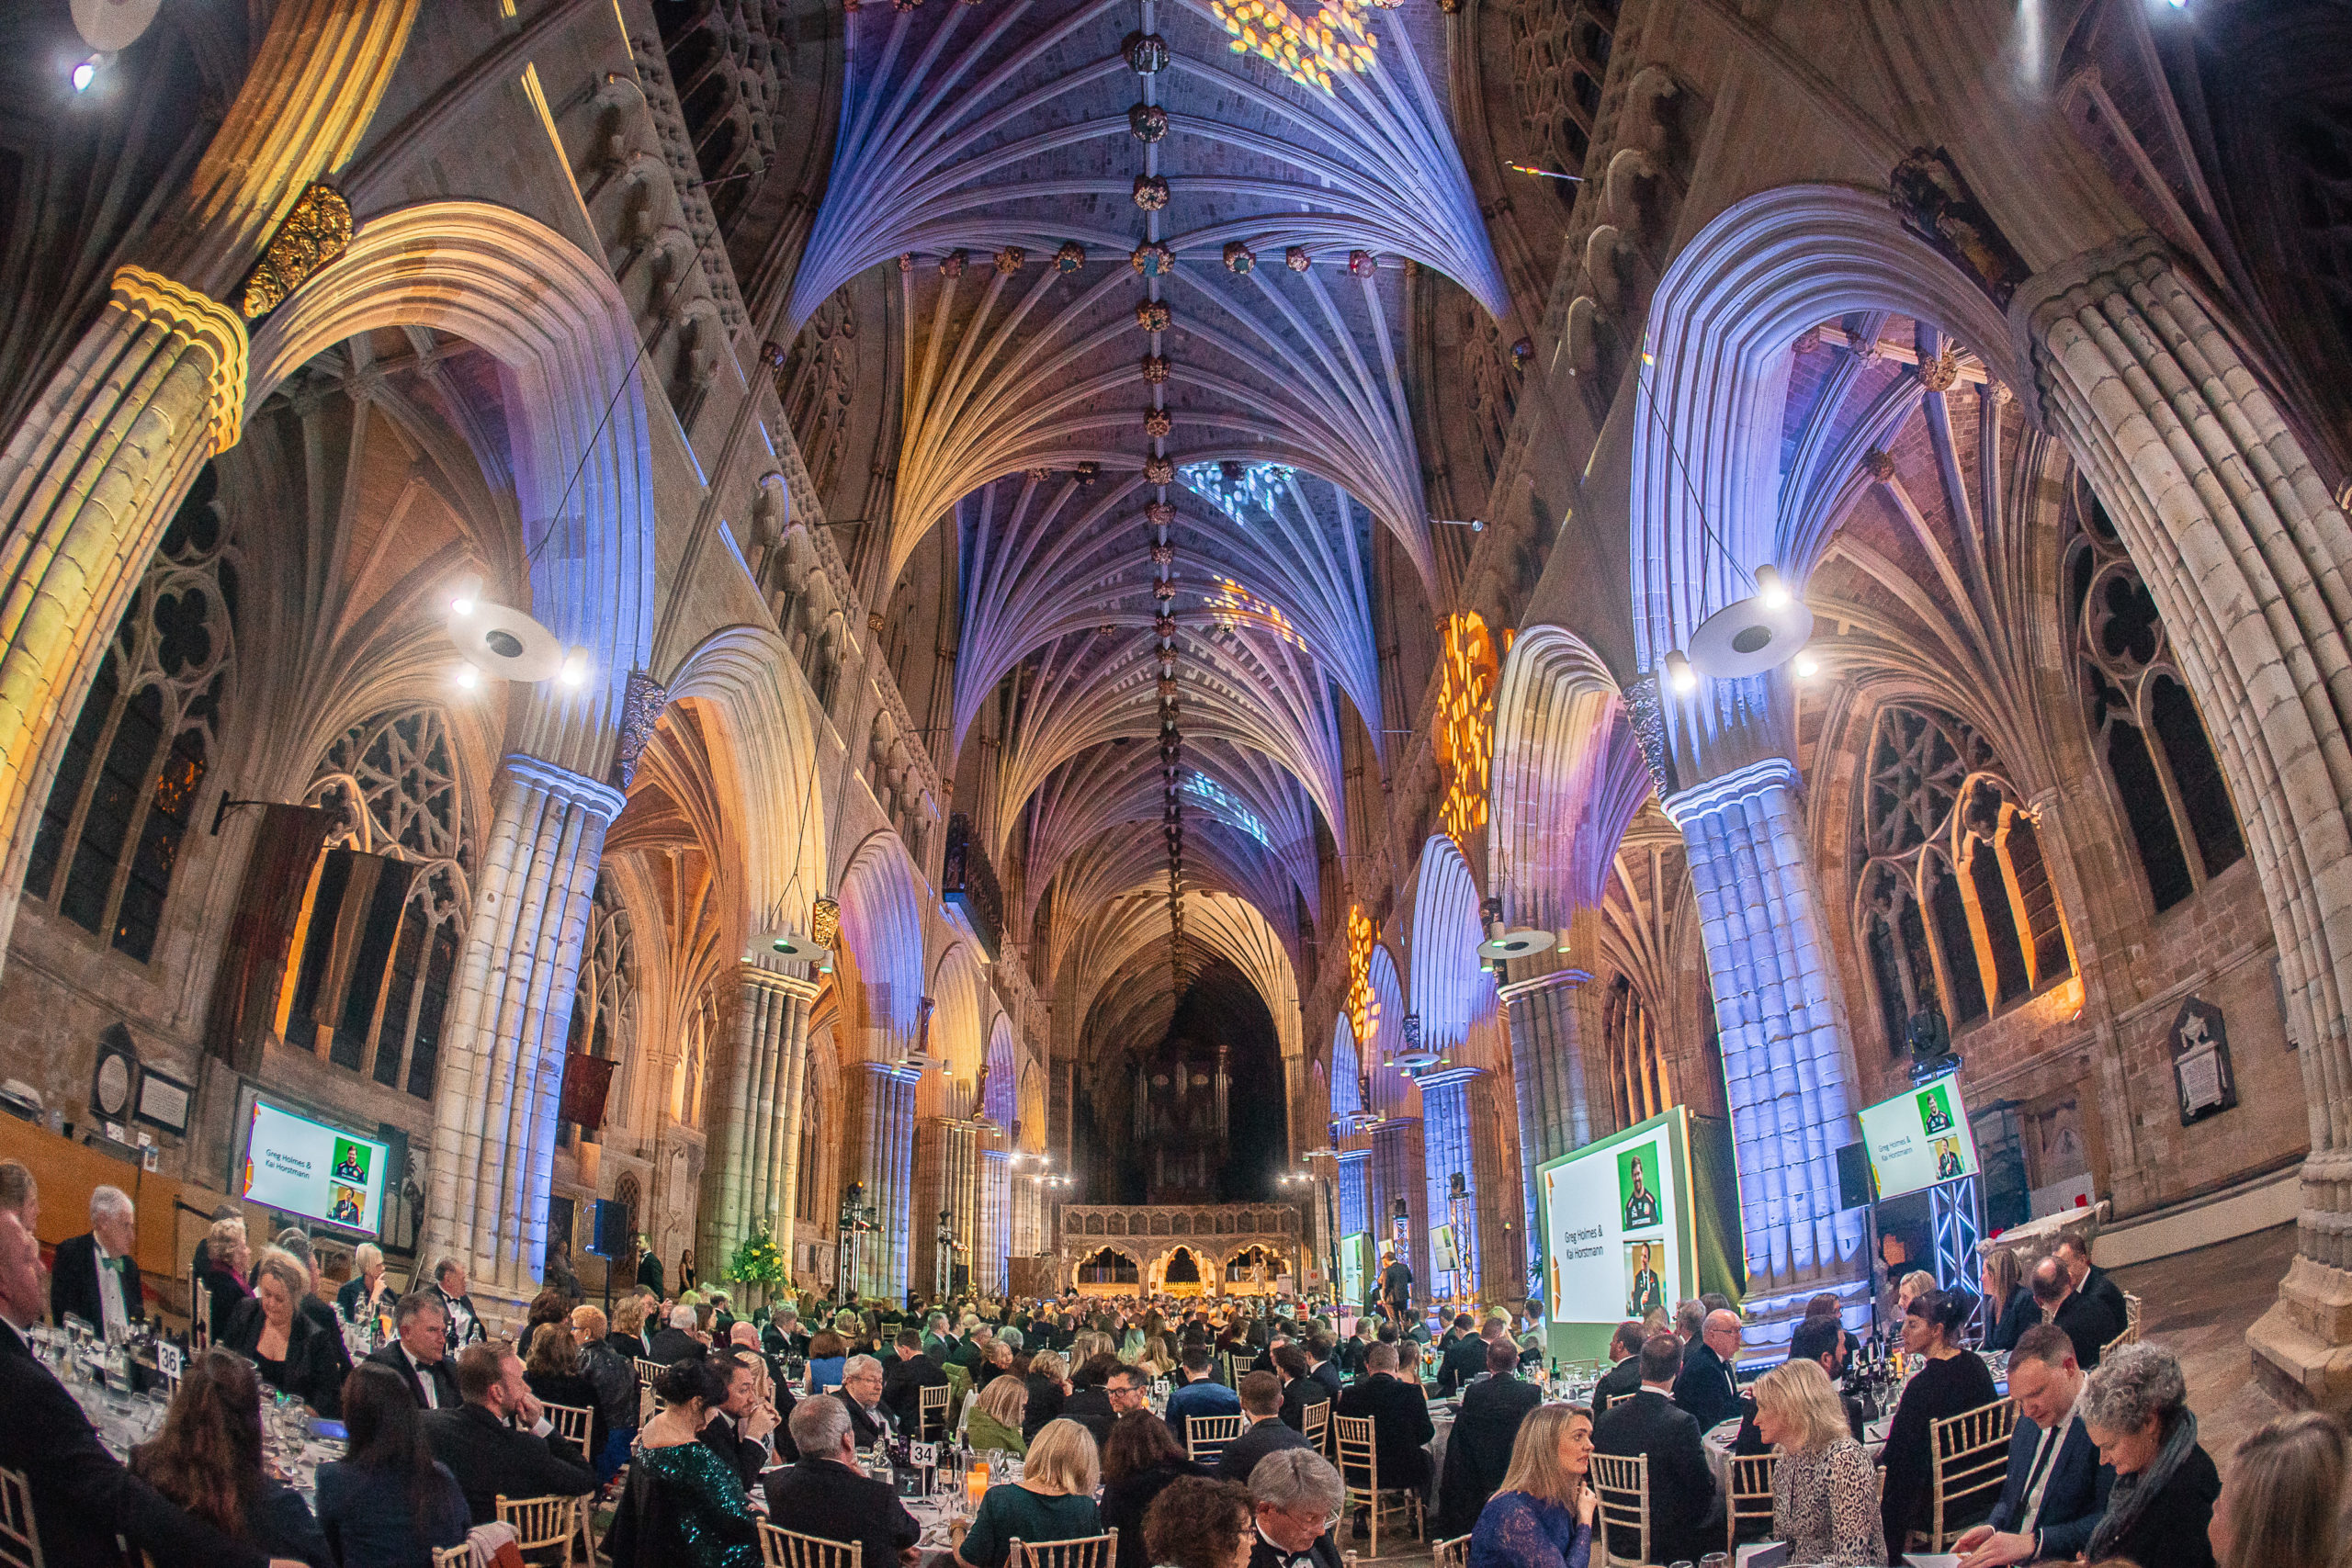 Inside of Exeter Cathedral for tourism awards